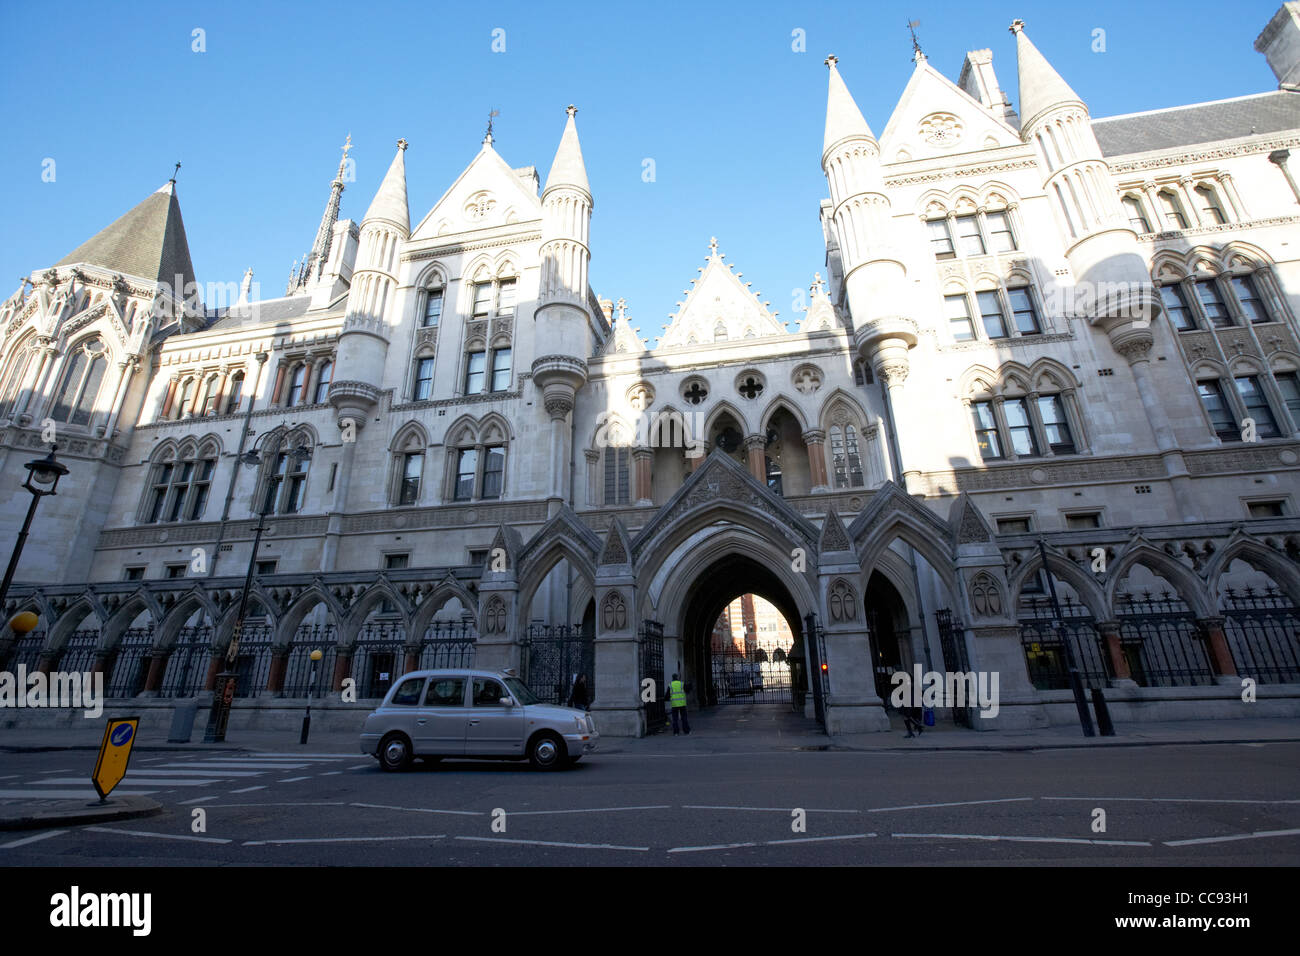 the royal courts of justice building London England UK United kingdom - Stock Image